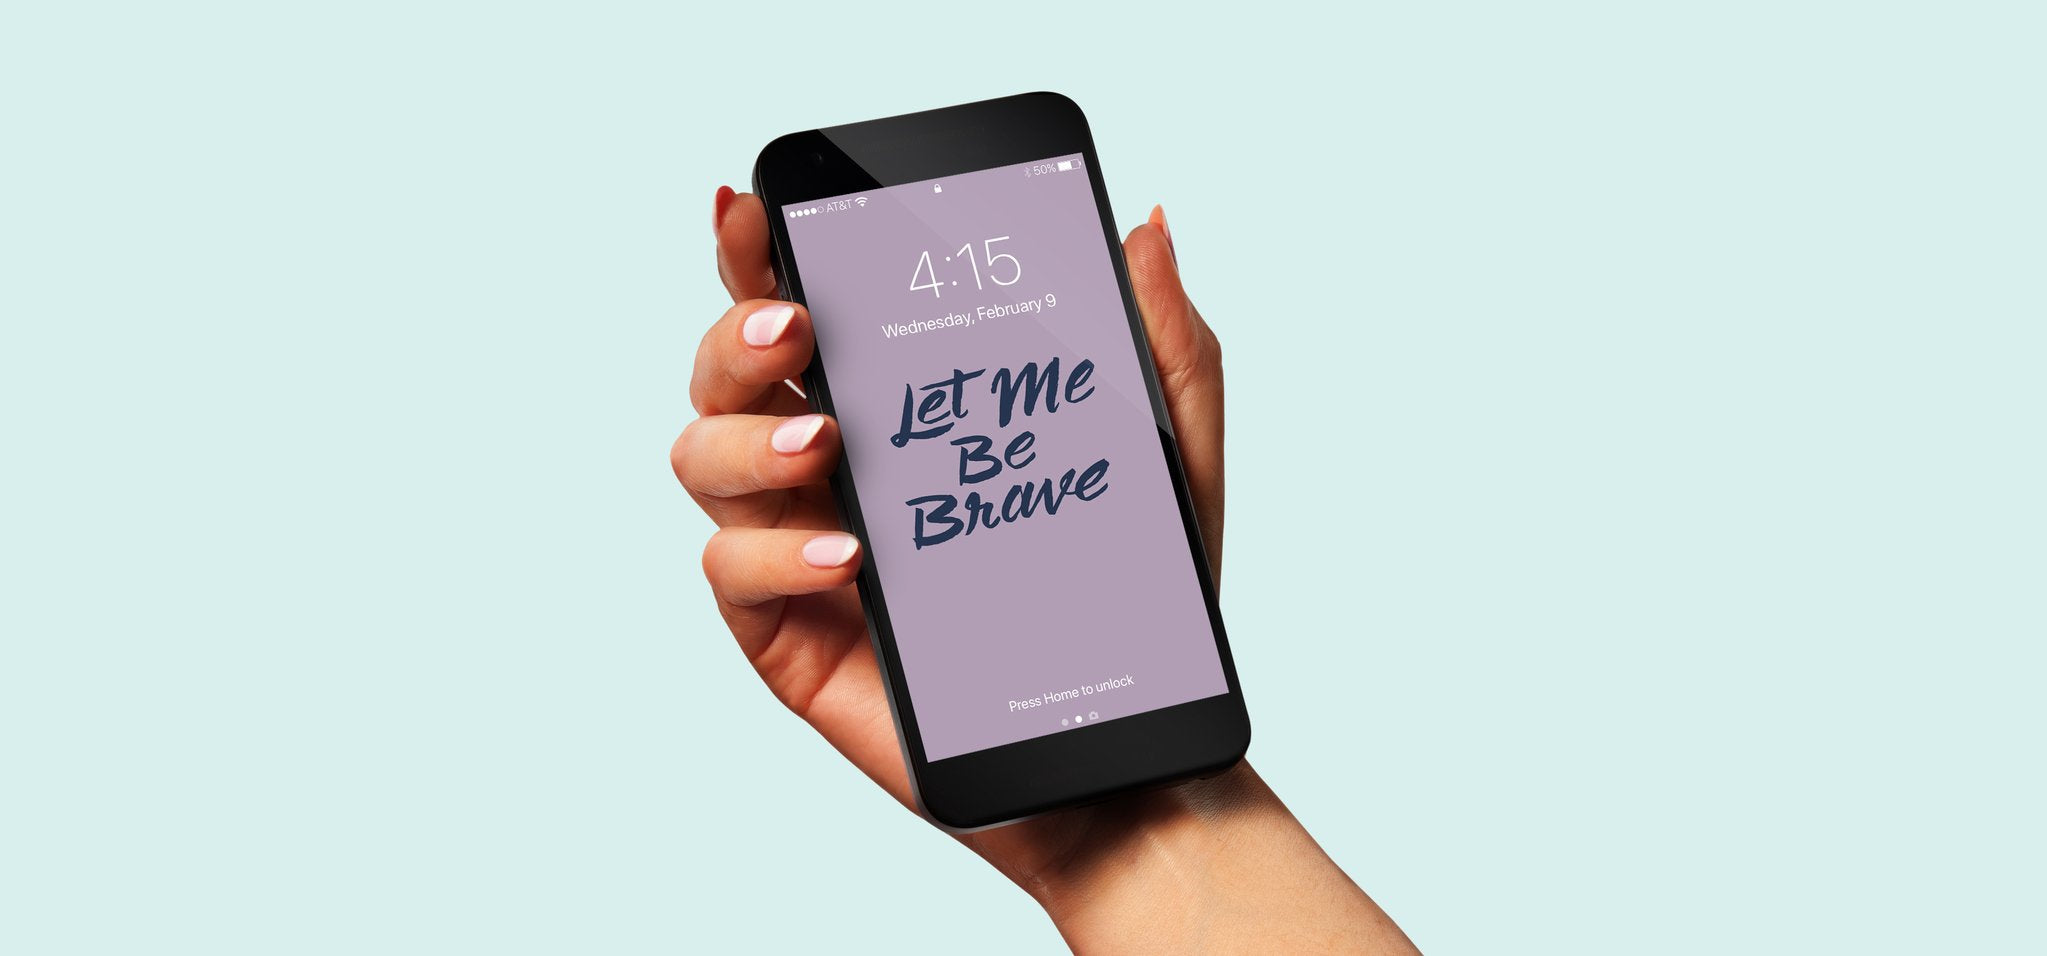 Let Me Be Brave | Free Phone Wallpaper